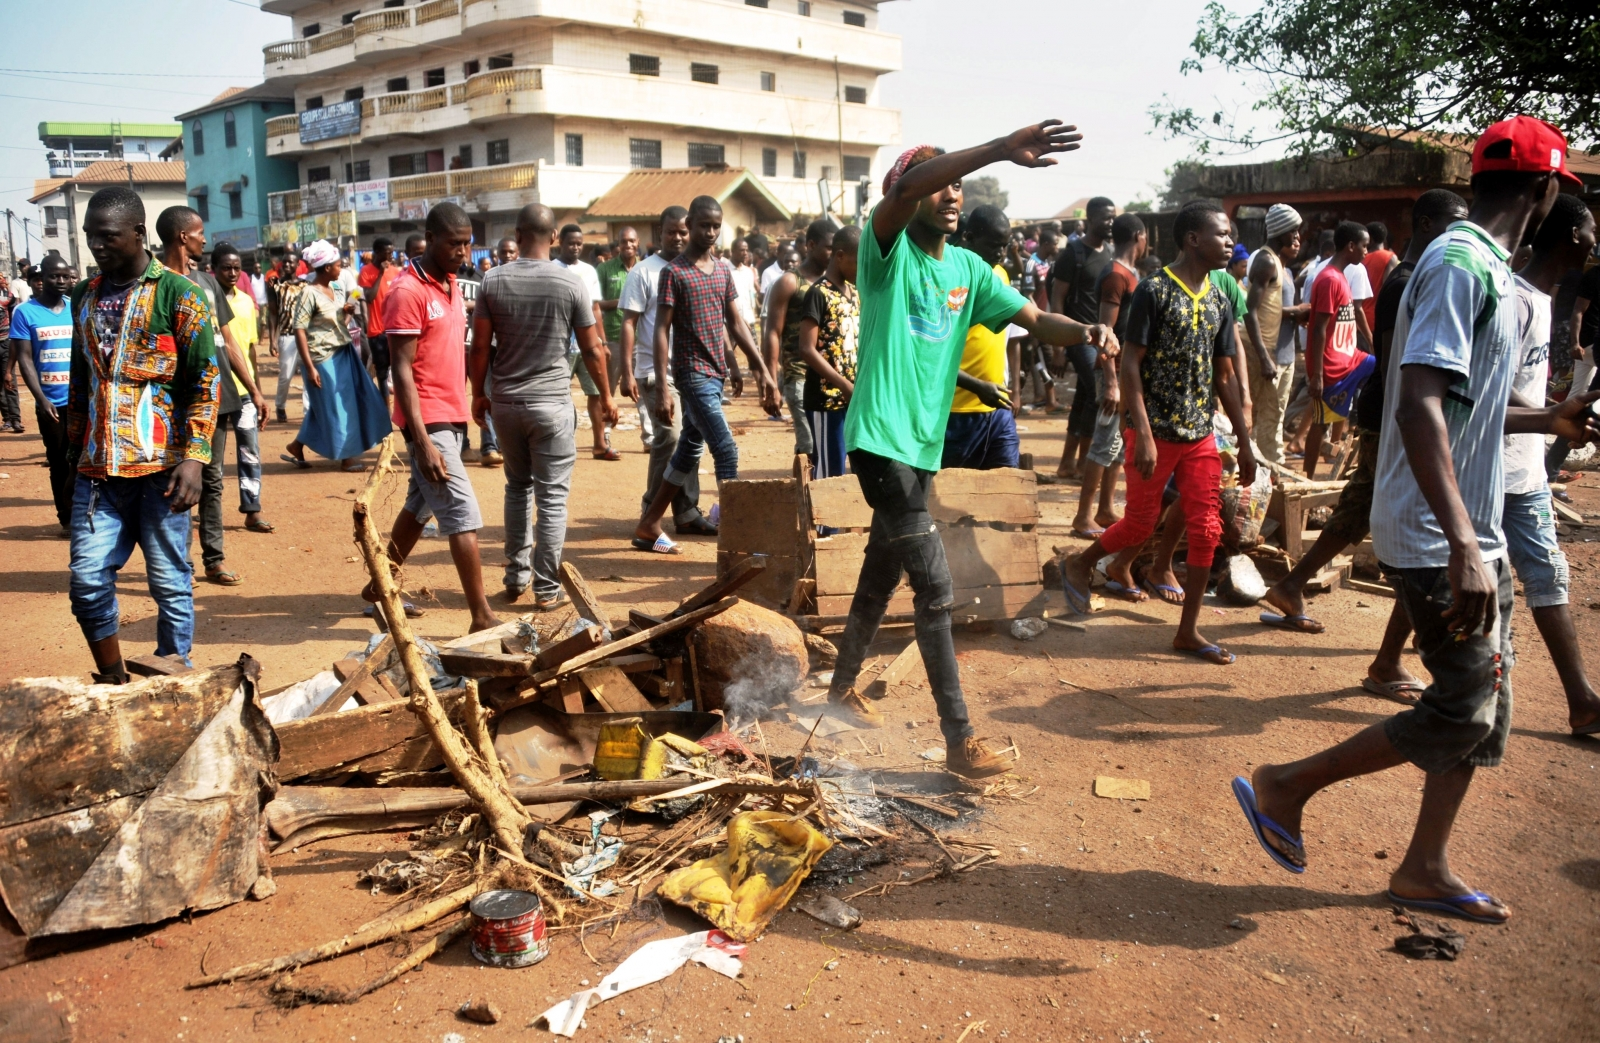 Guinea education protest